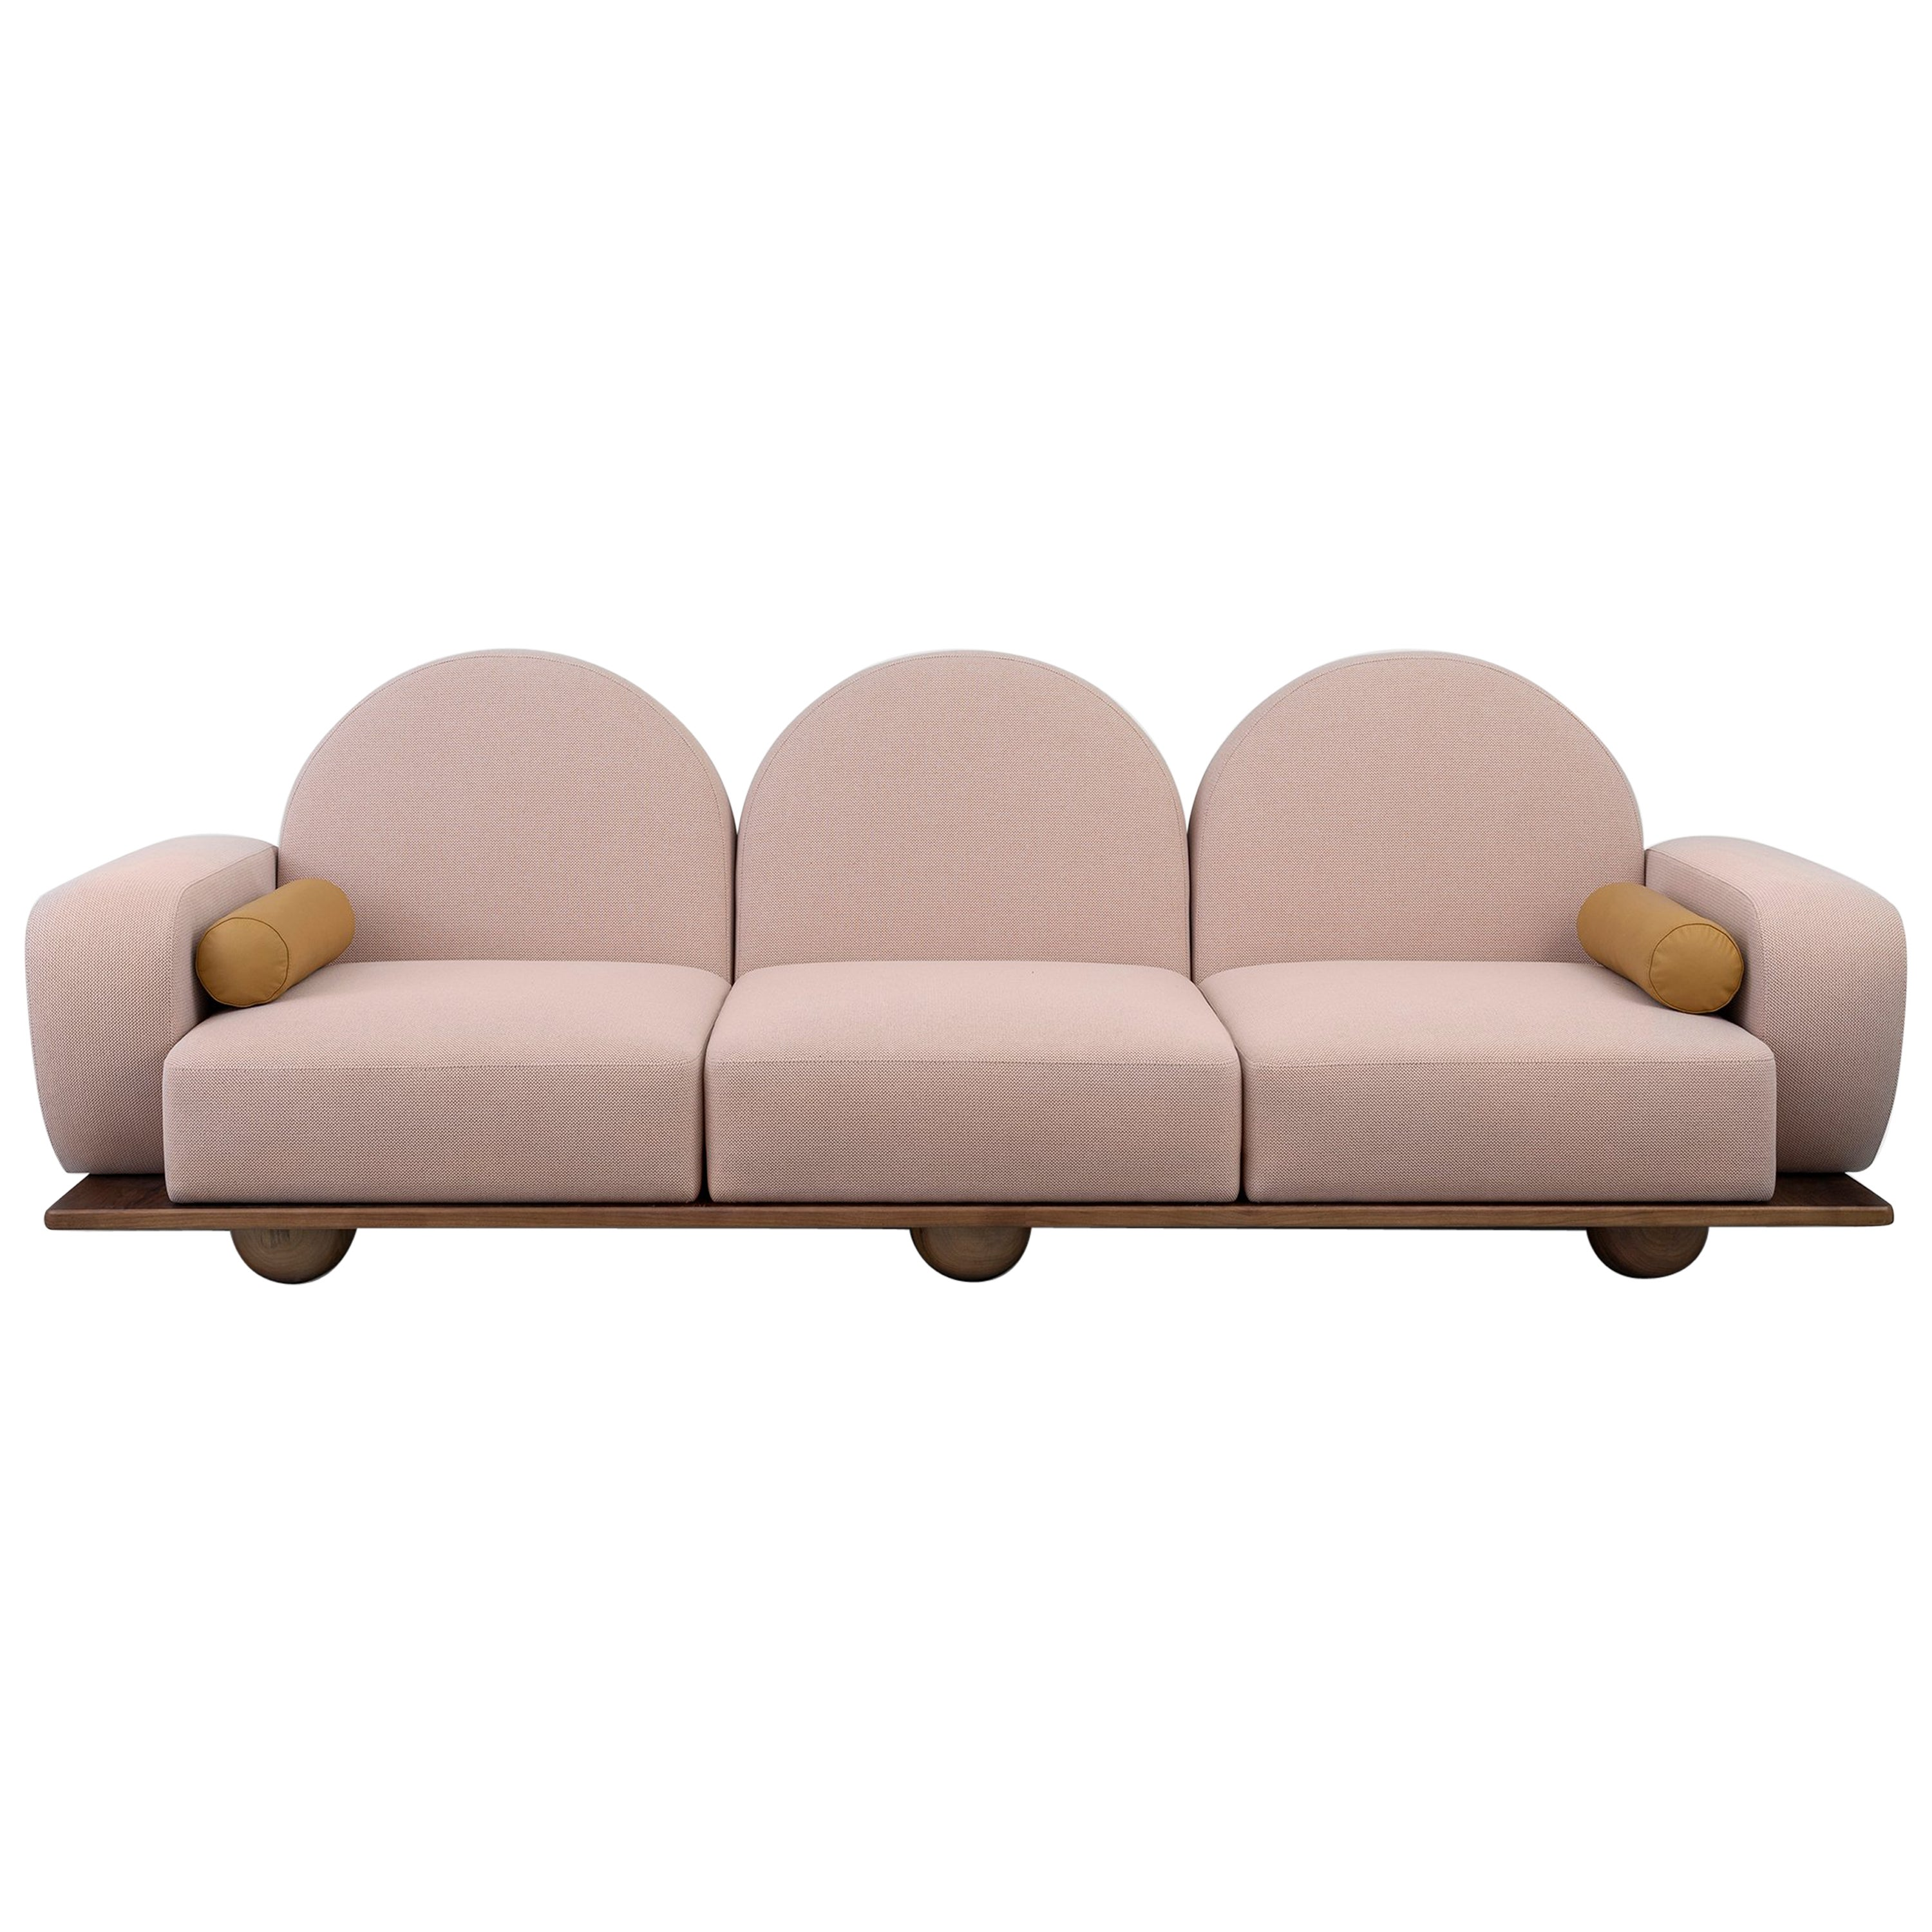 Beice 3-Seat Sofa